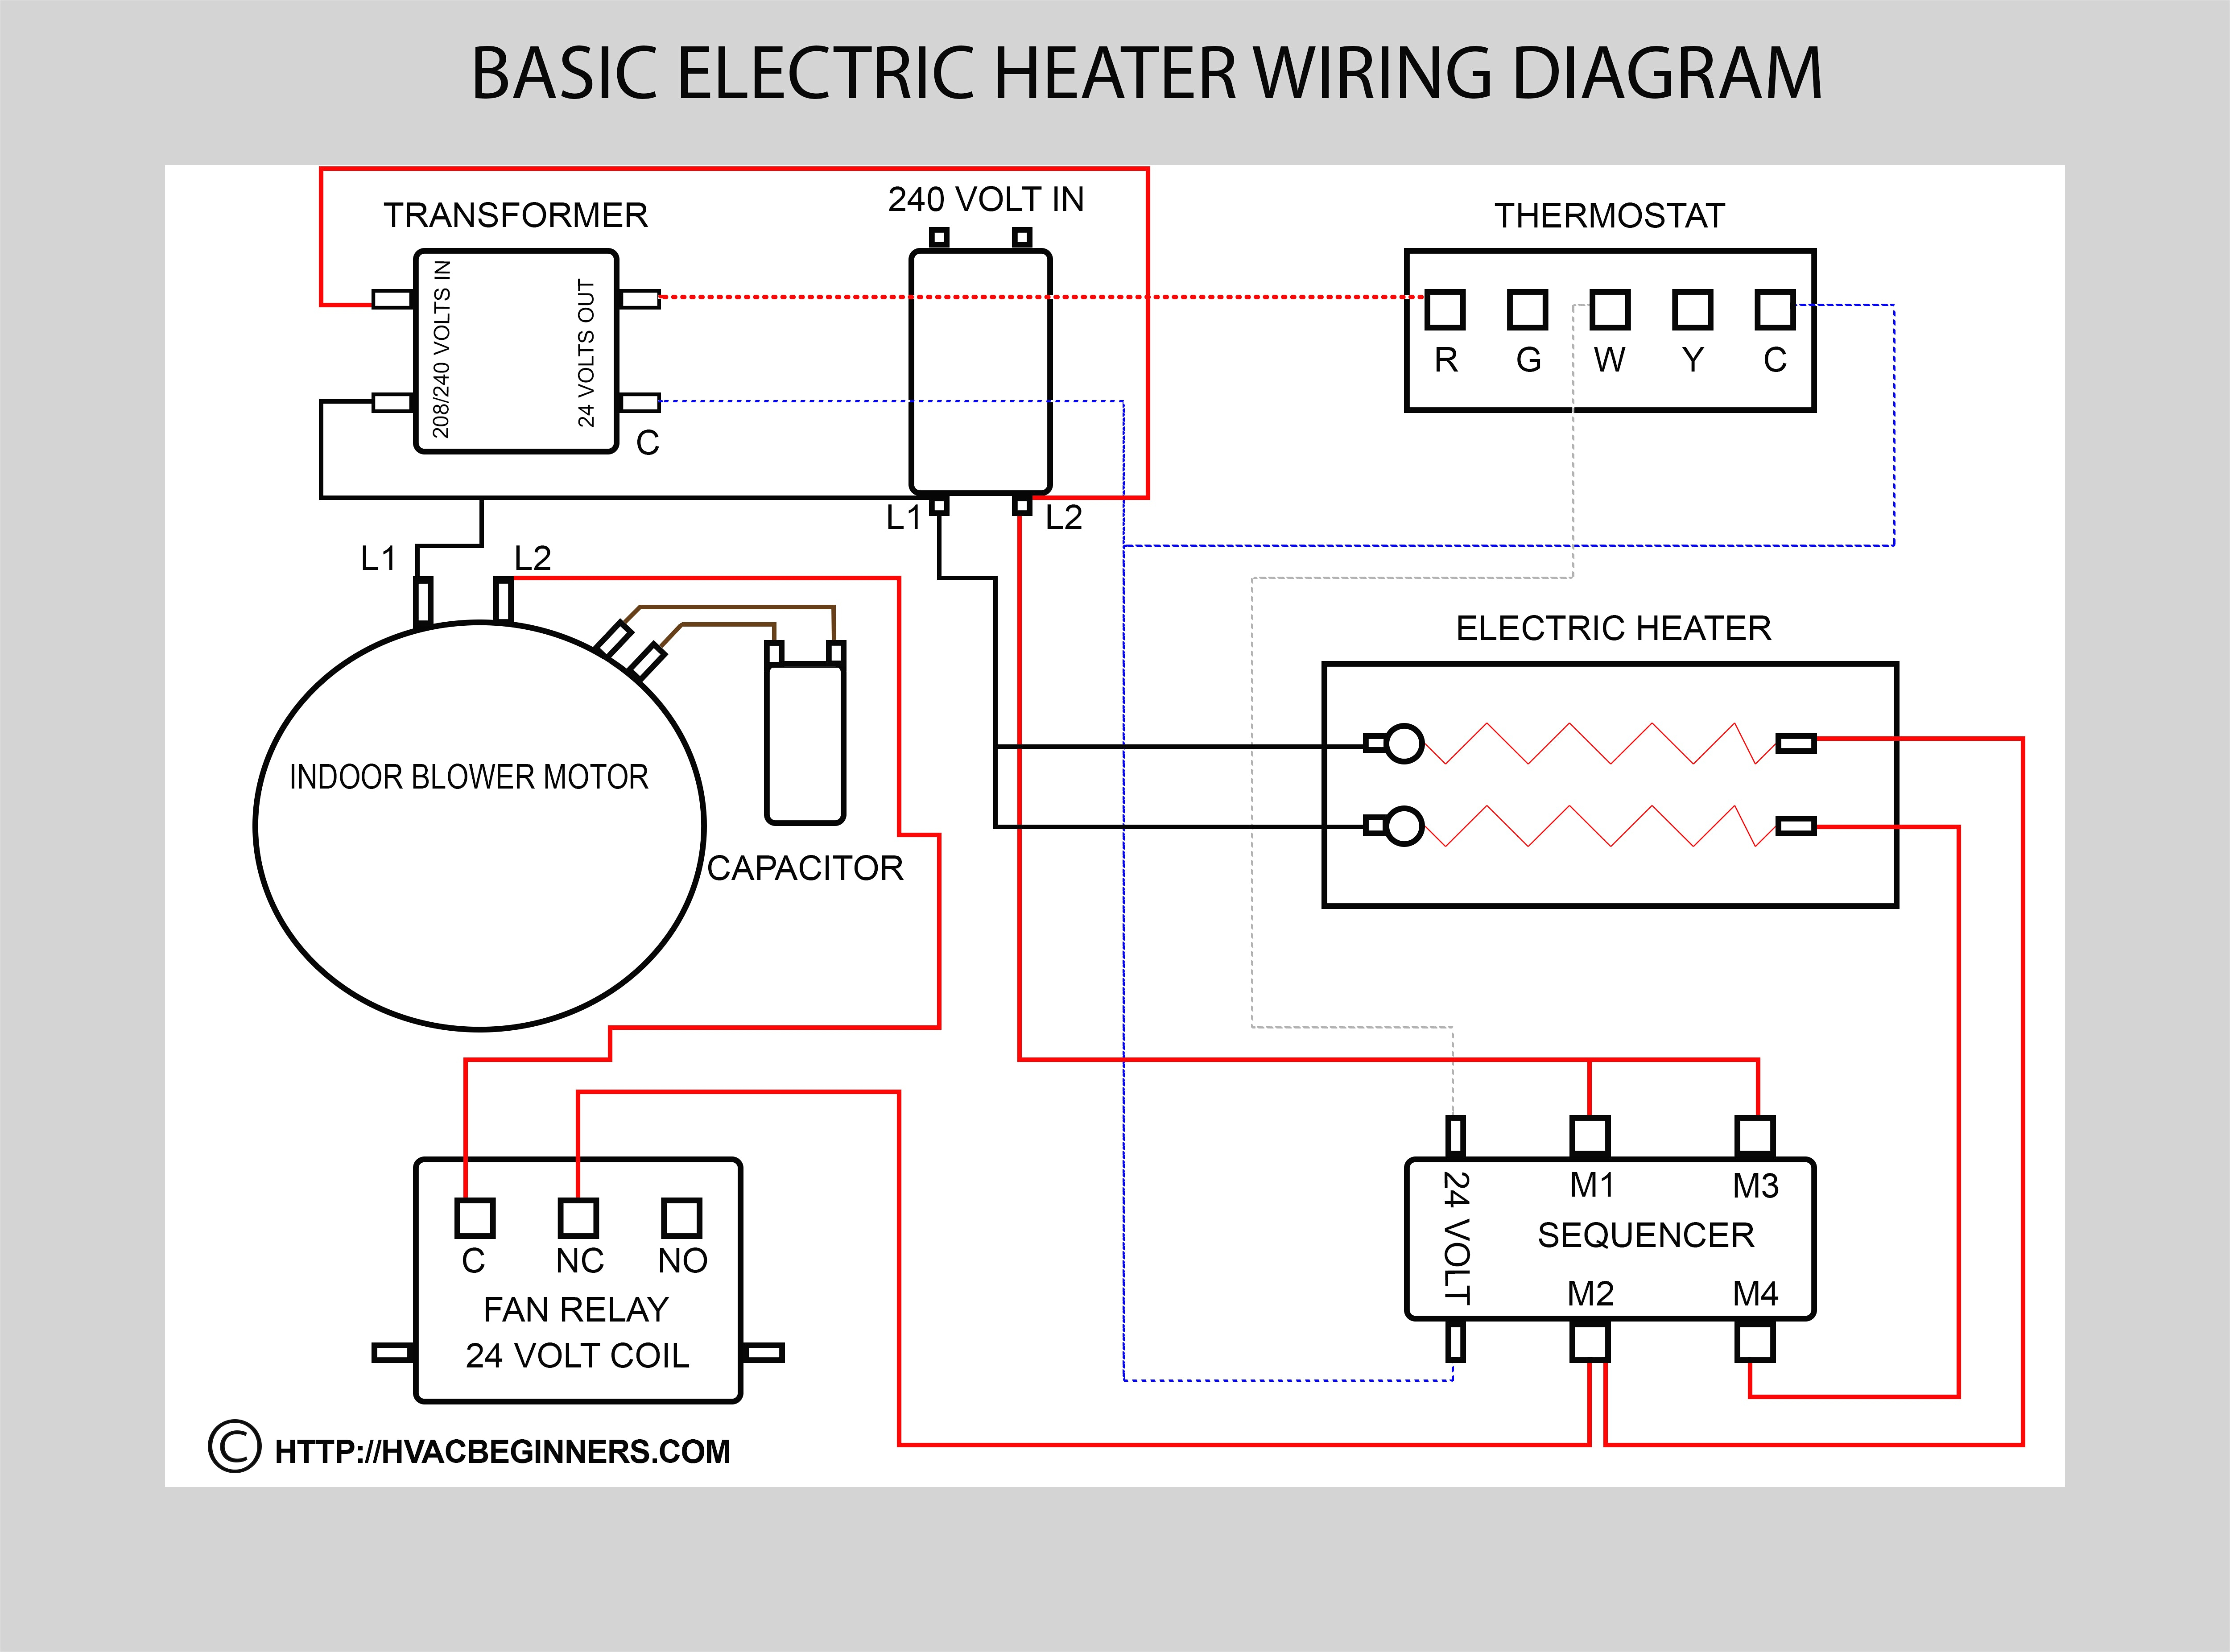 Ac Compressor Schematic | Wiring Diagram - Ac Compressor Wiring Diagram